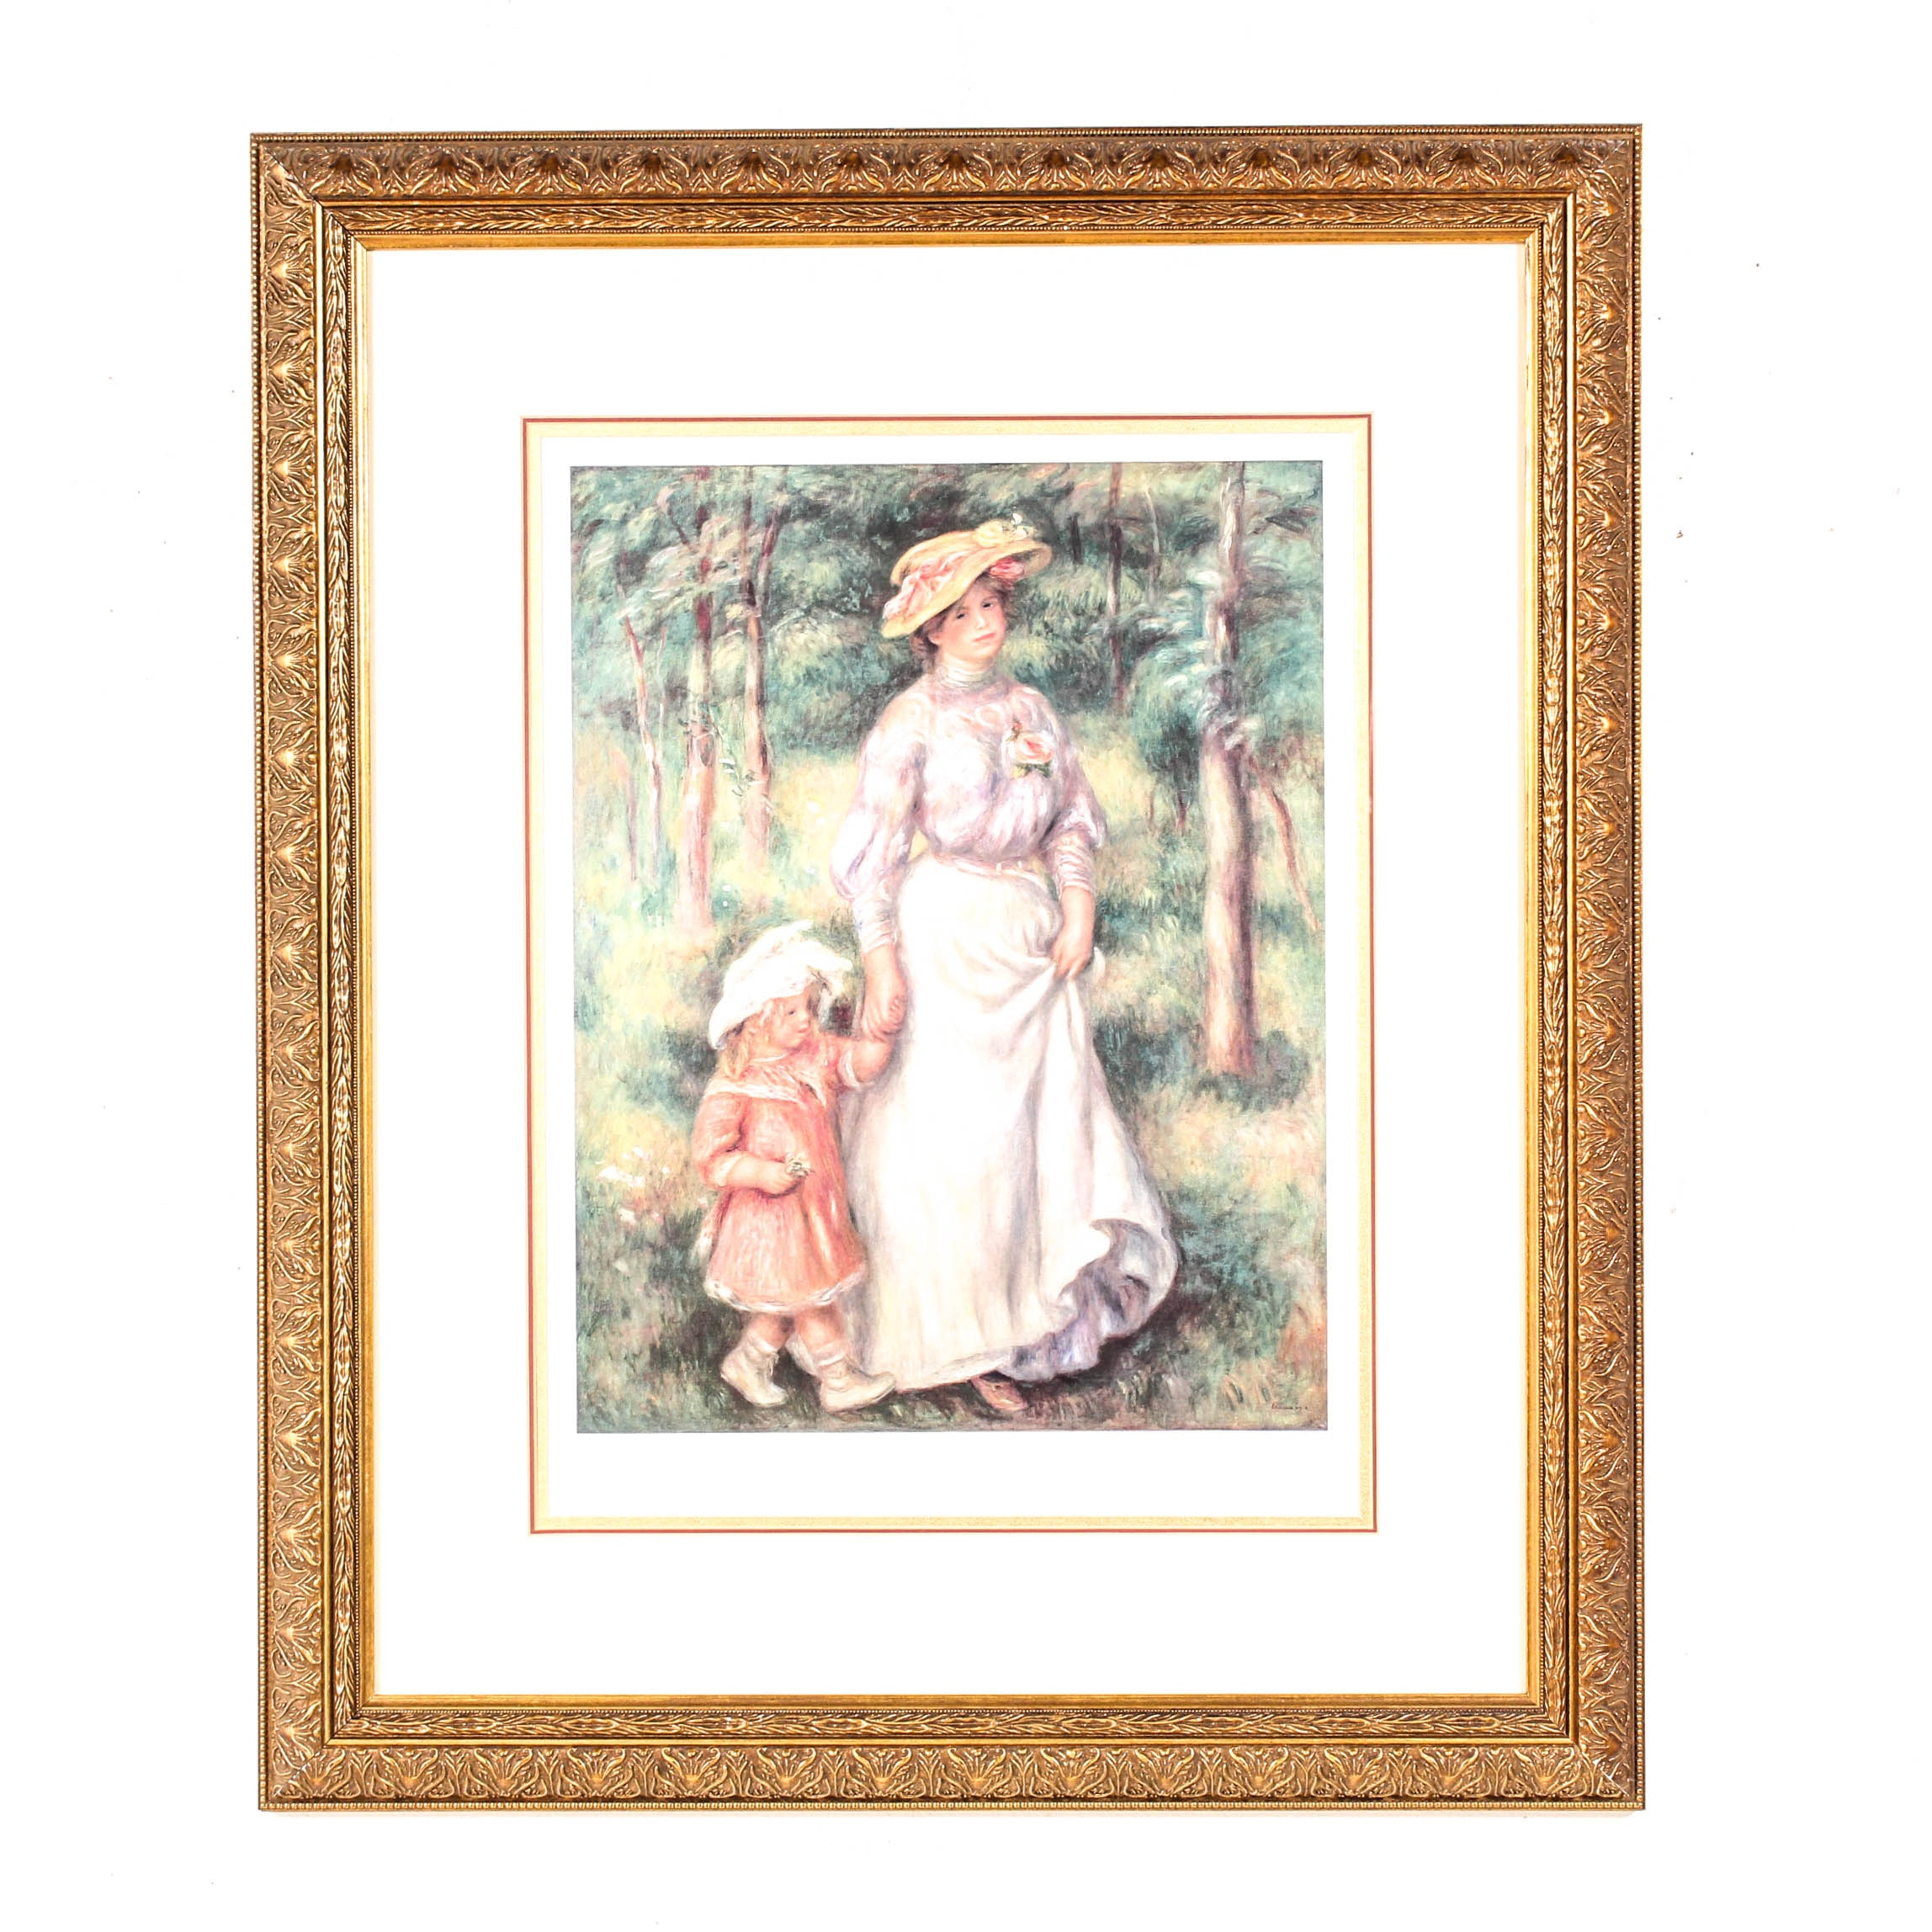 """The Promenade"" Limited Edition Offset Lithograph After Pierre-Auguste Renoir"